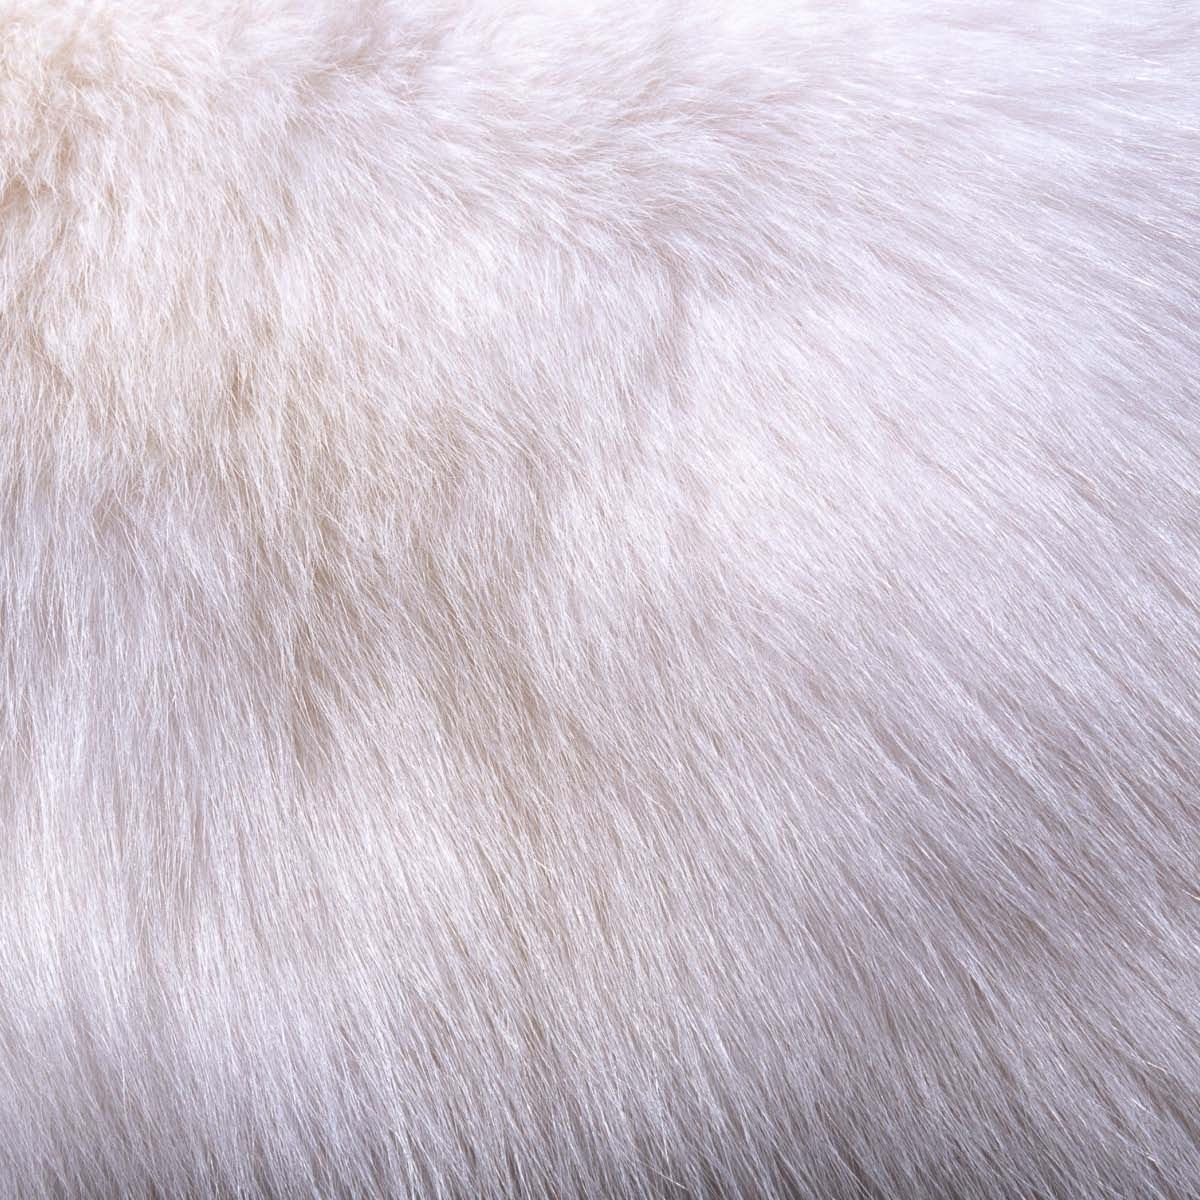 White Fur Wallpaper: Character Design Brief (Sept